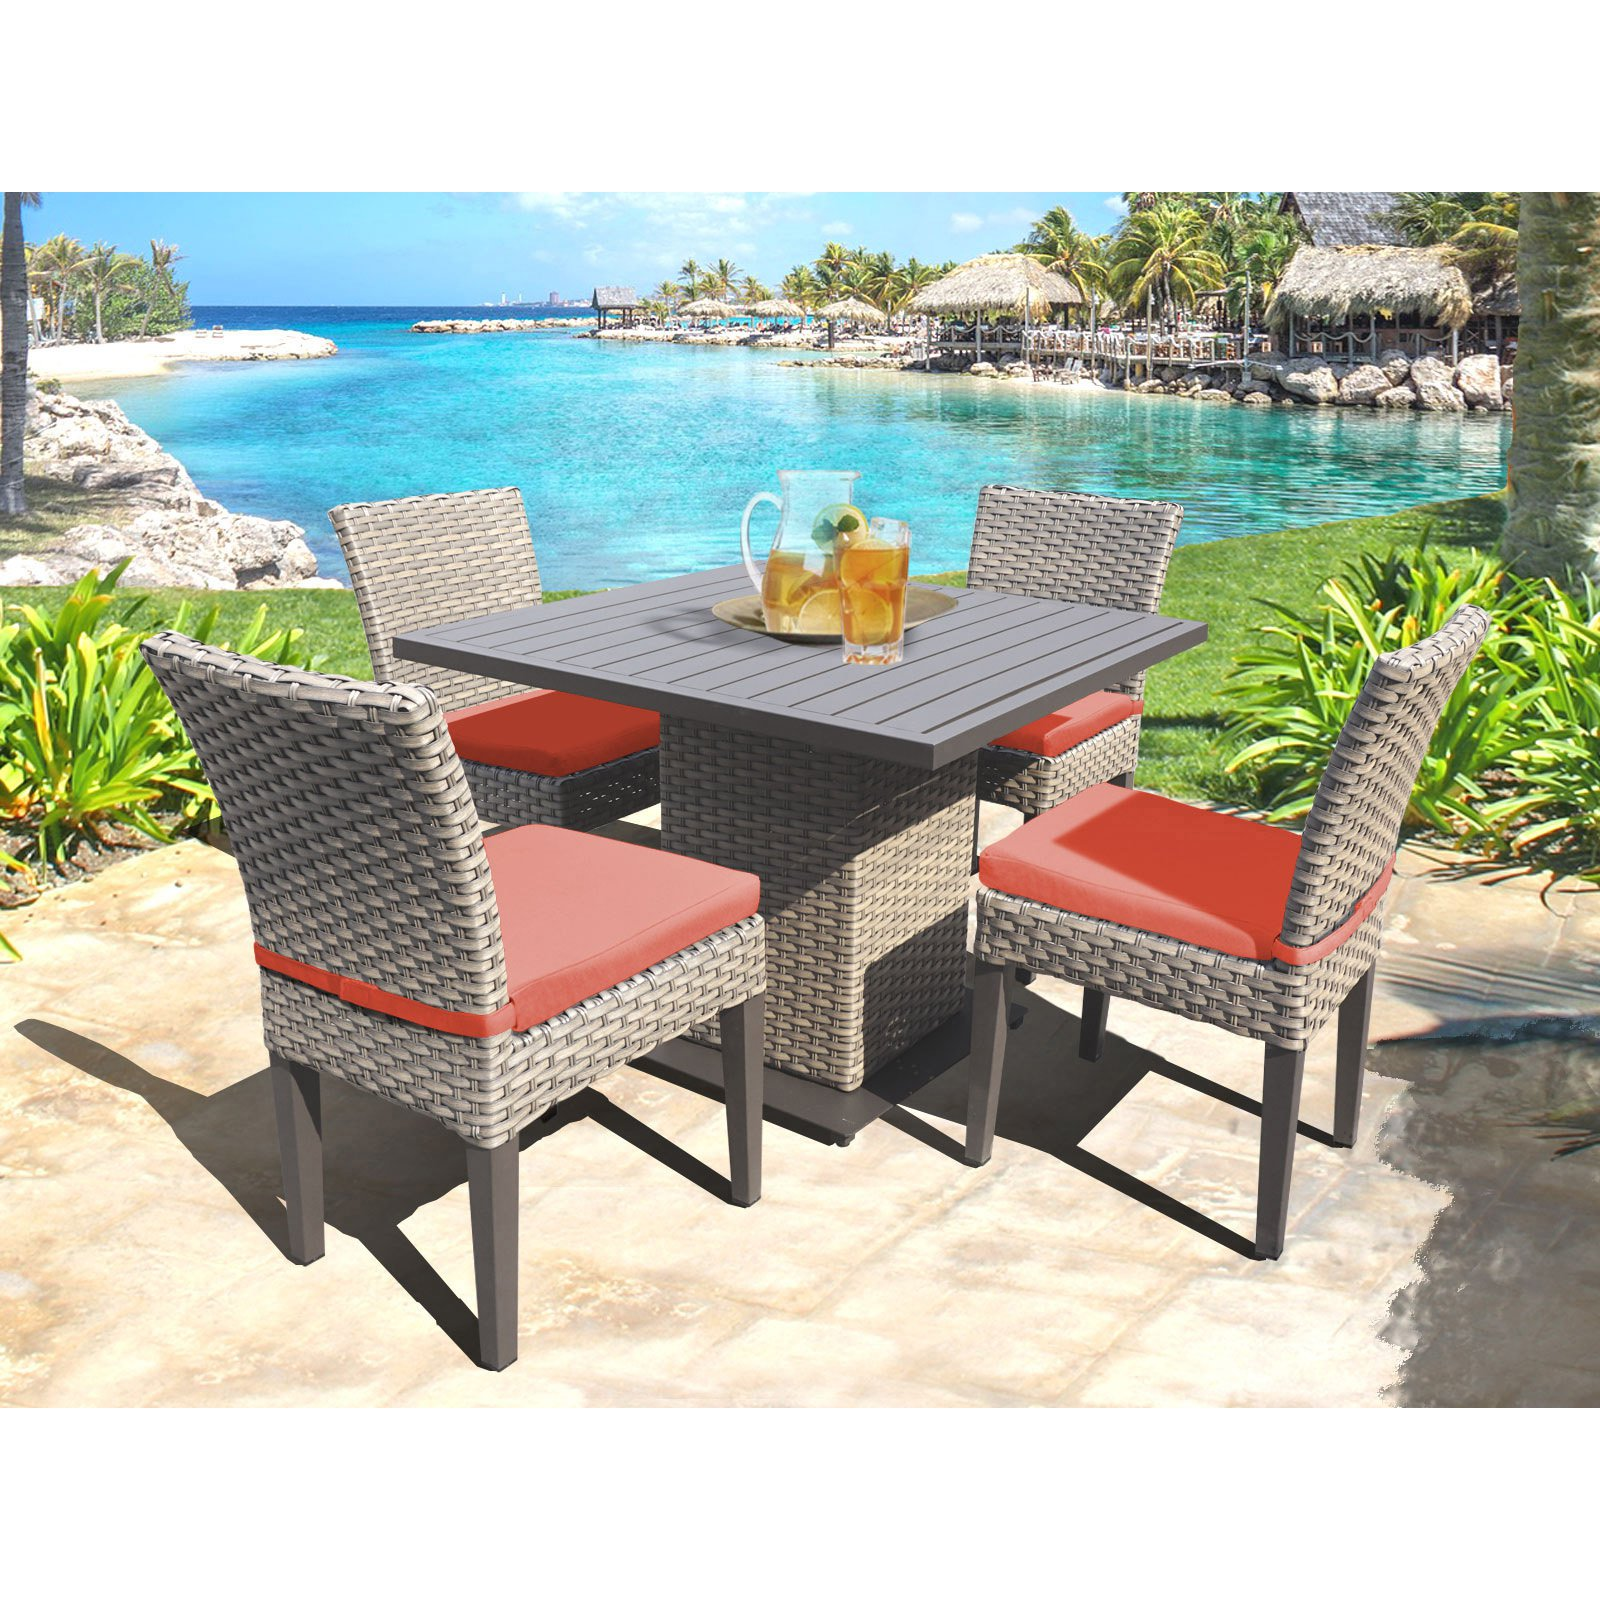 TK Classics Oasis Wicker 5 Piece Outdoor Square Dining Table with Armless Chairs Set